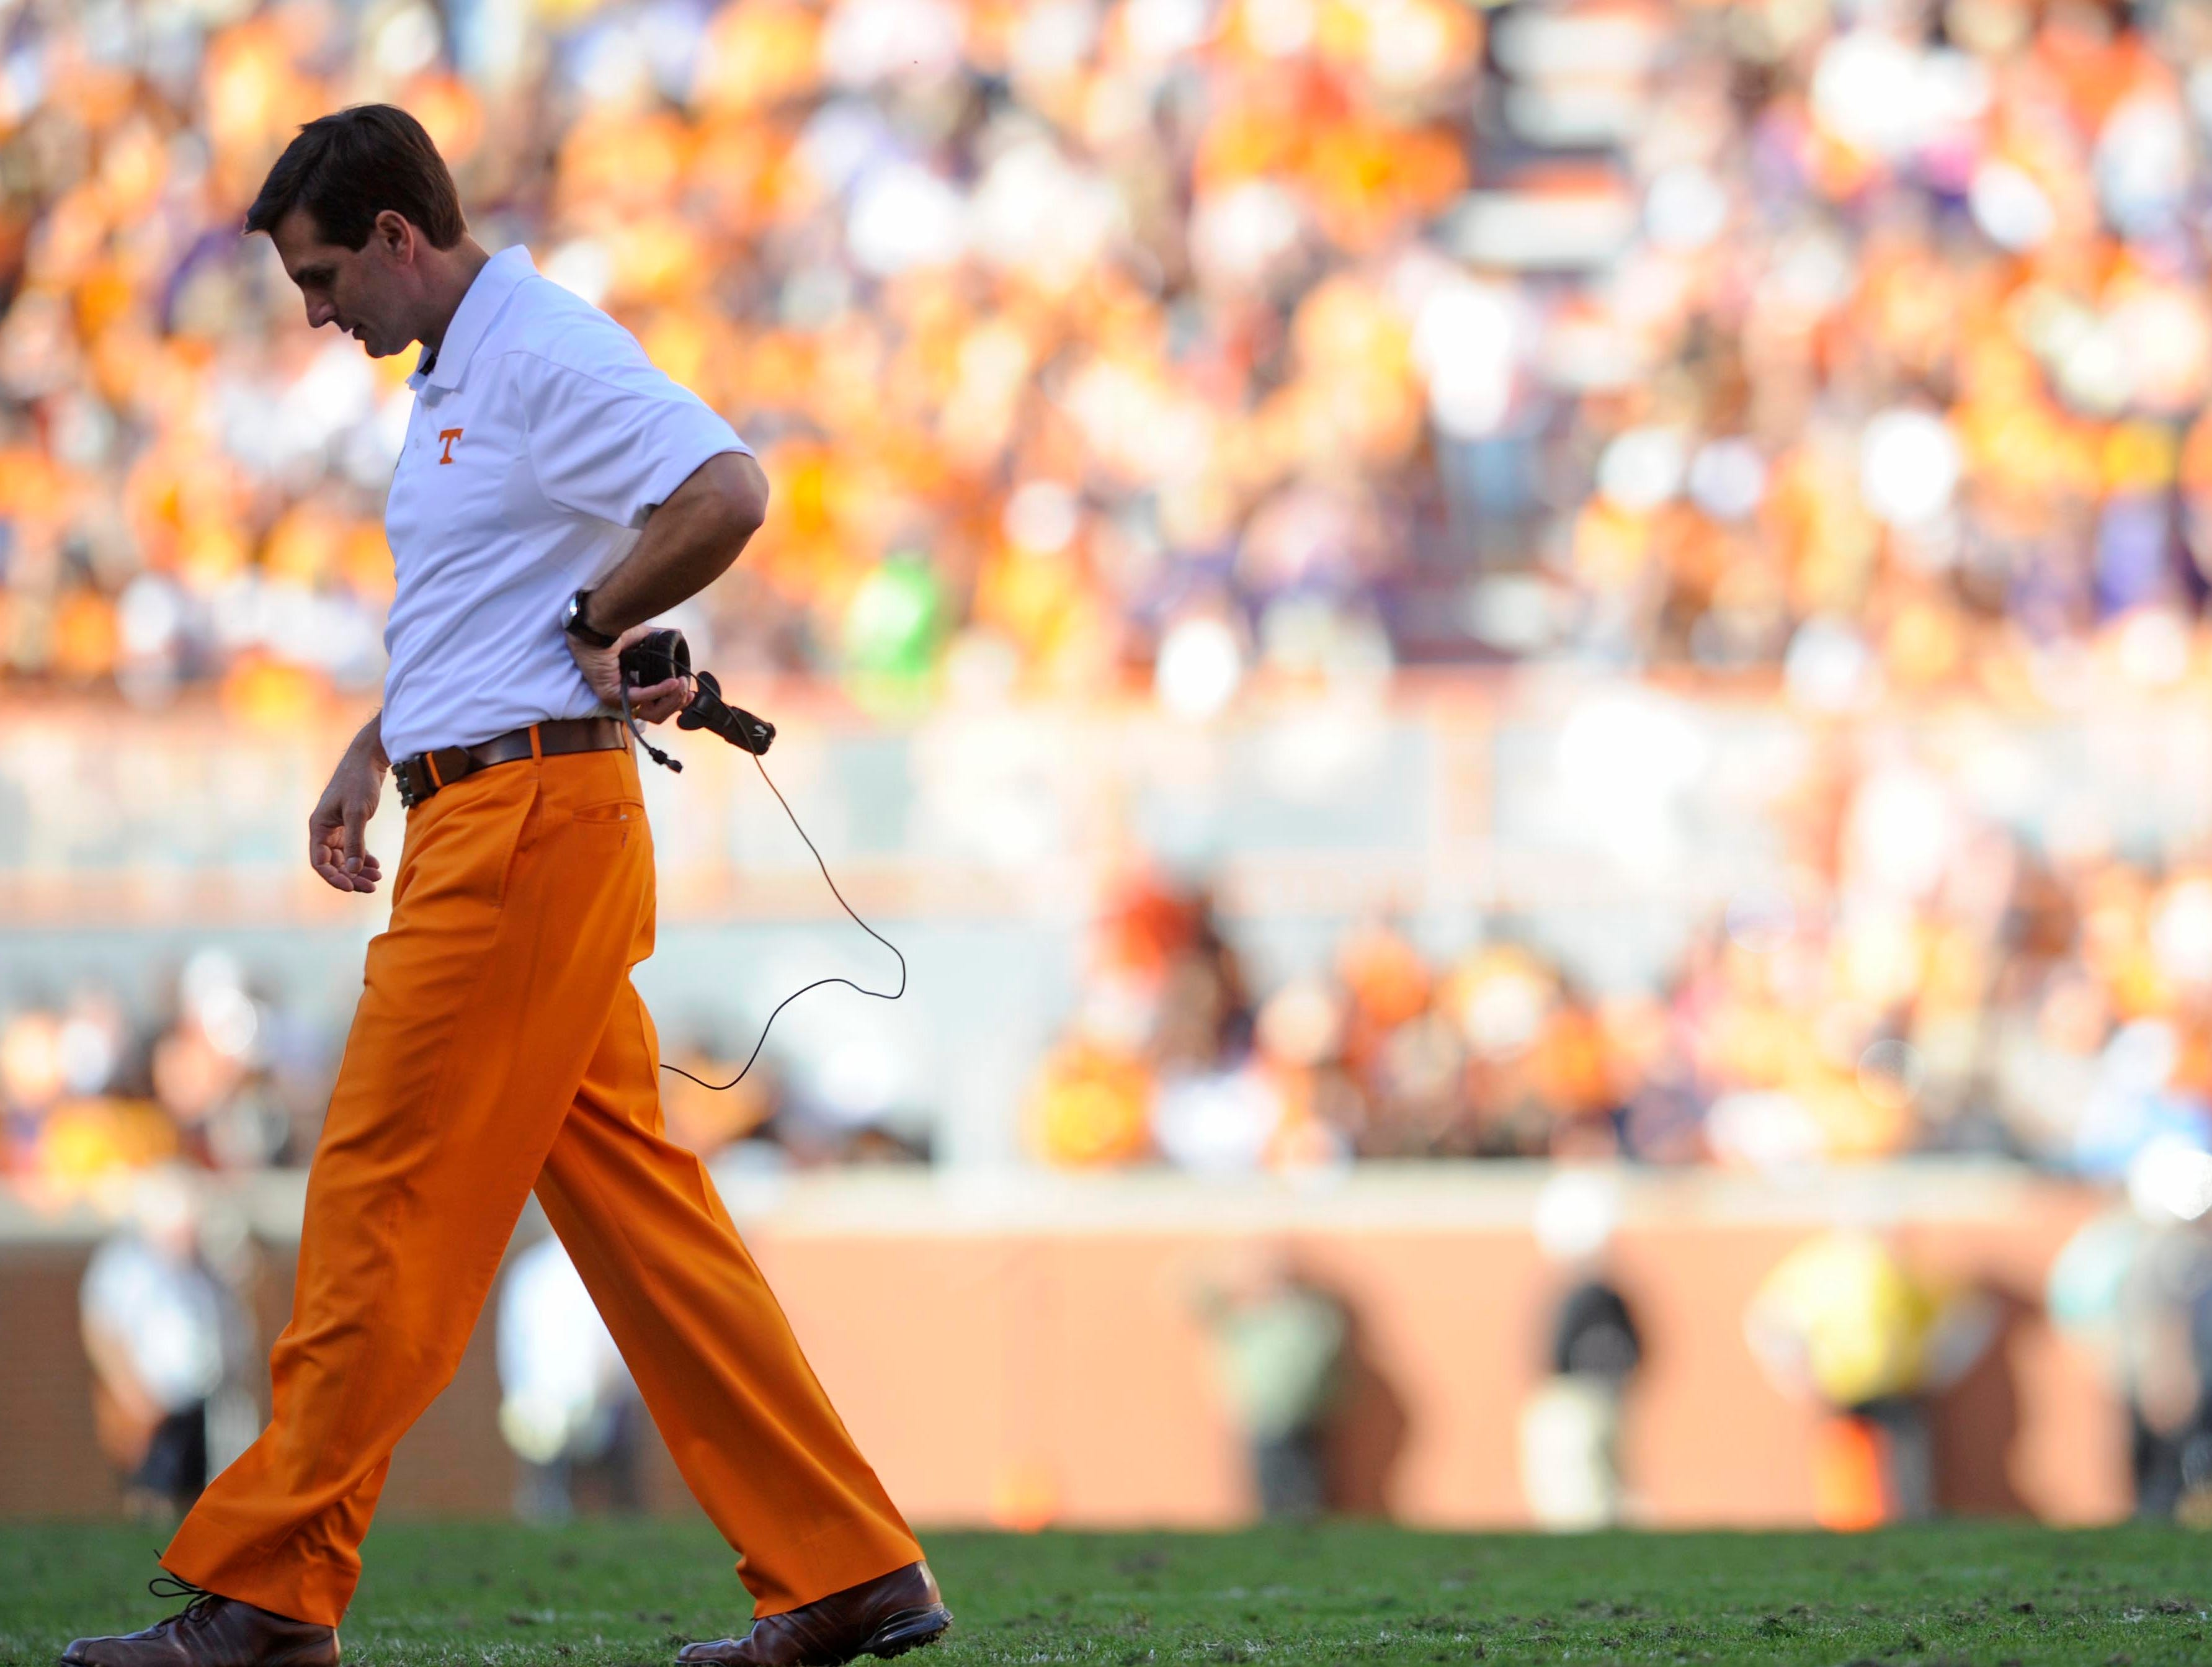 Tennessee head coach Derek Dooley walks to the sidelines during a timeout against LSU at Neyland Stadium on Saturday, Oct. 15, 2011.